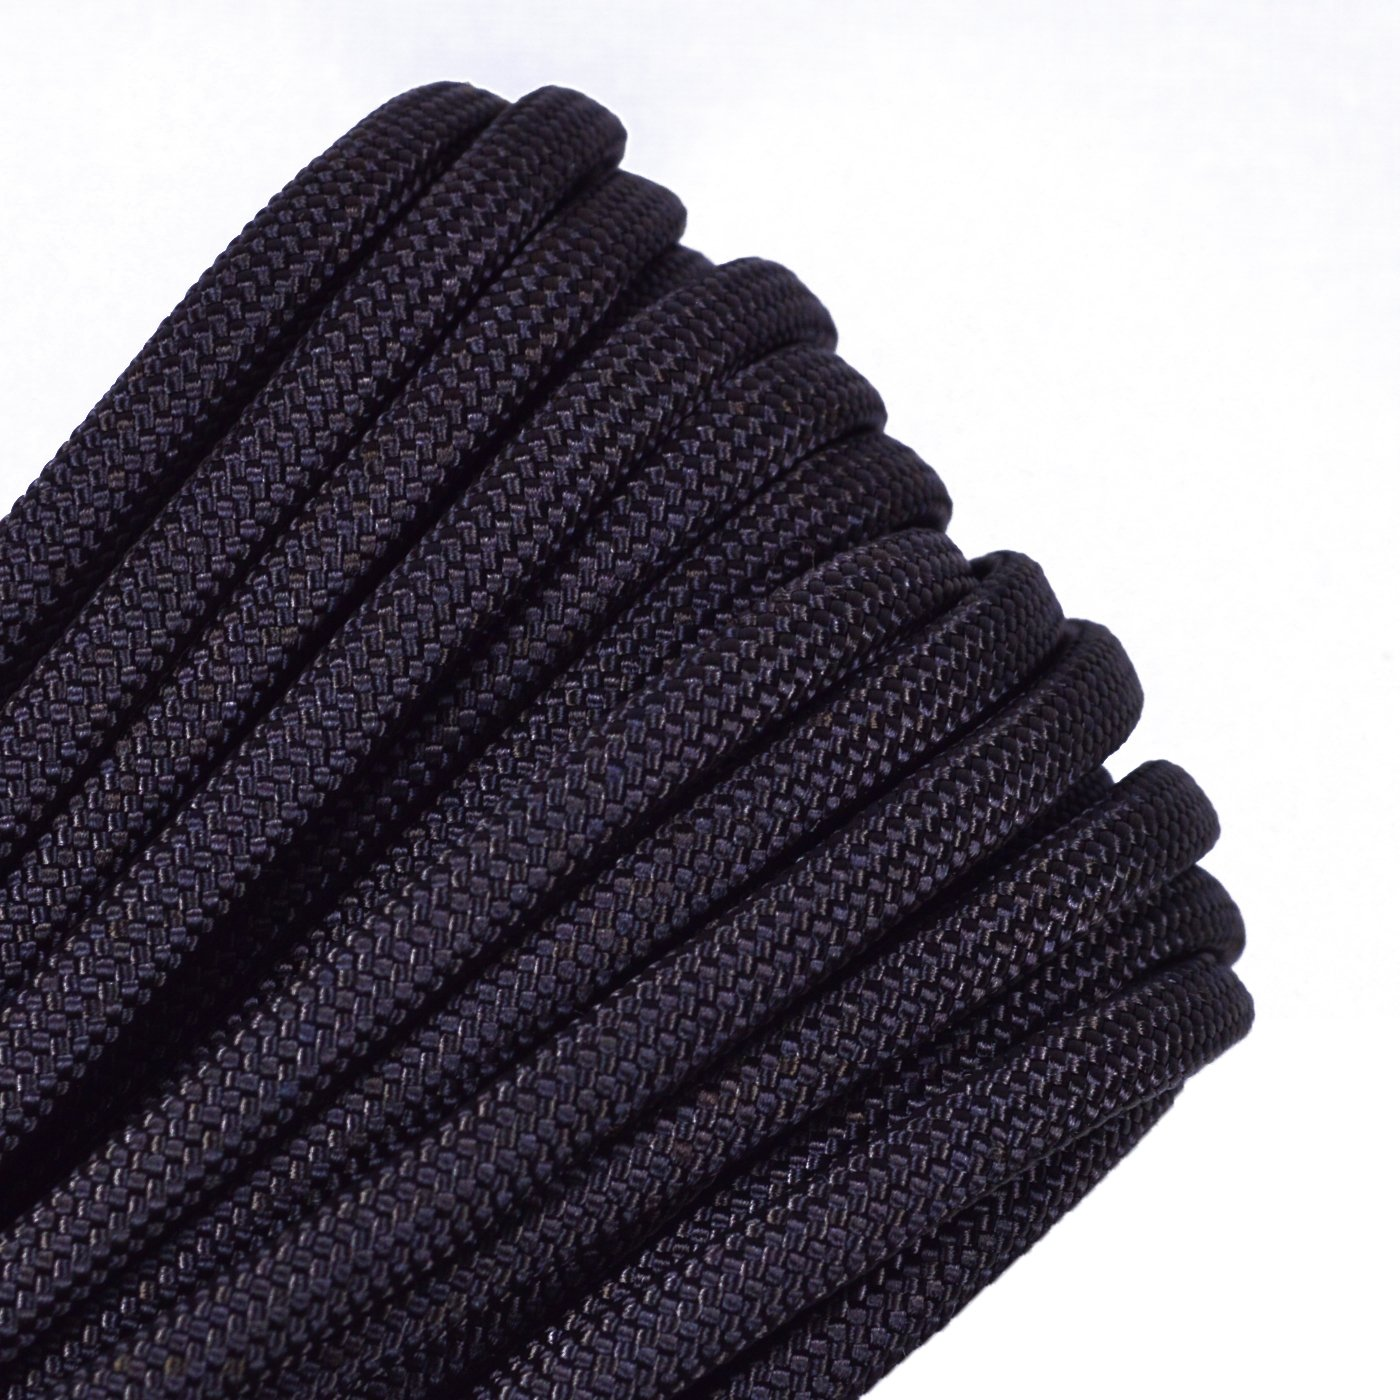 Solid Colors Paracord - Type III Parachute Cord - Acid Brown - 10 Feet